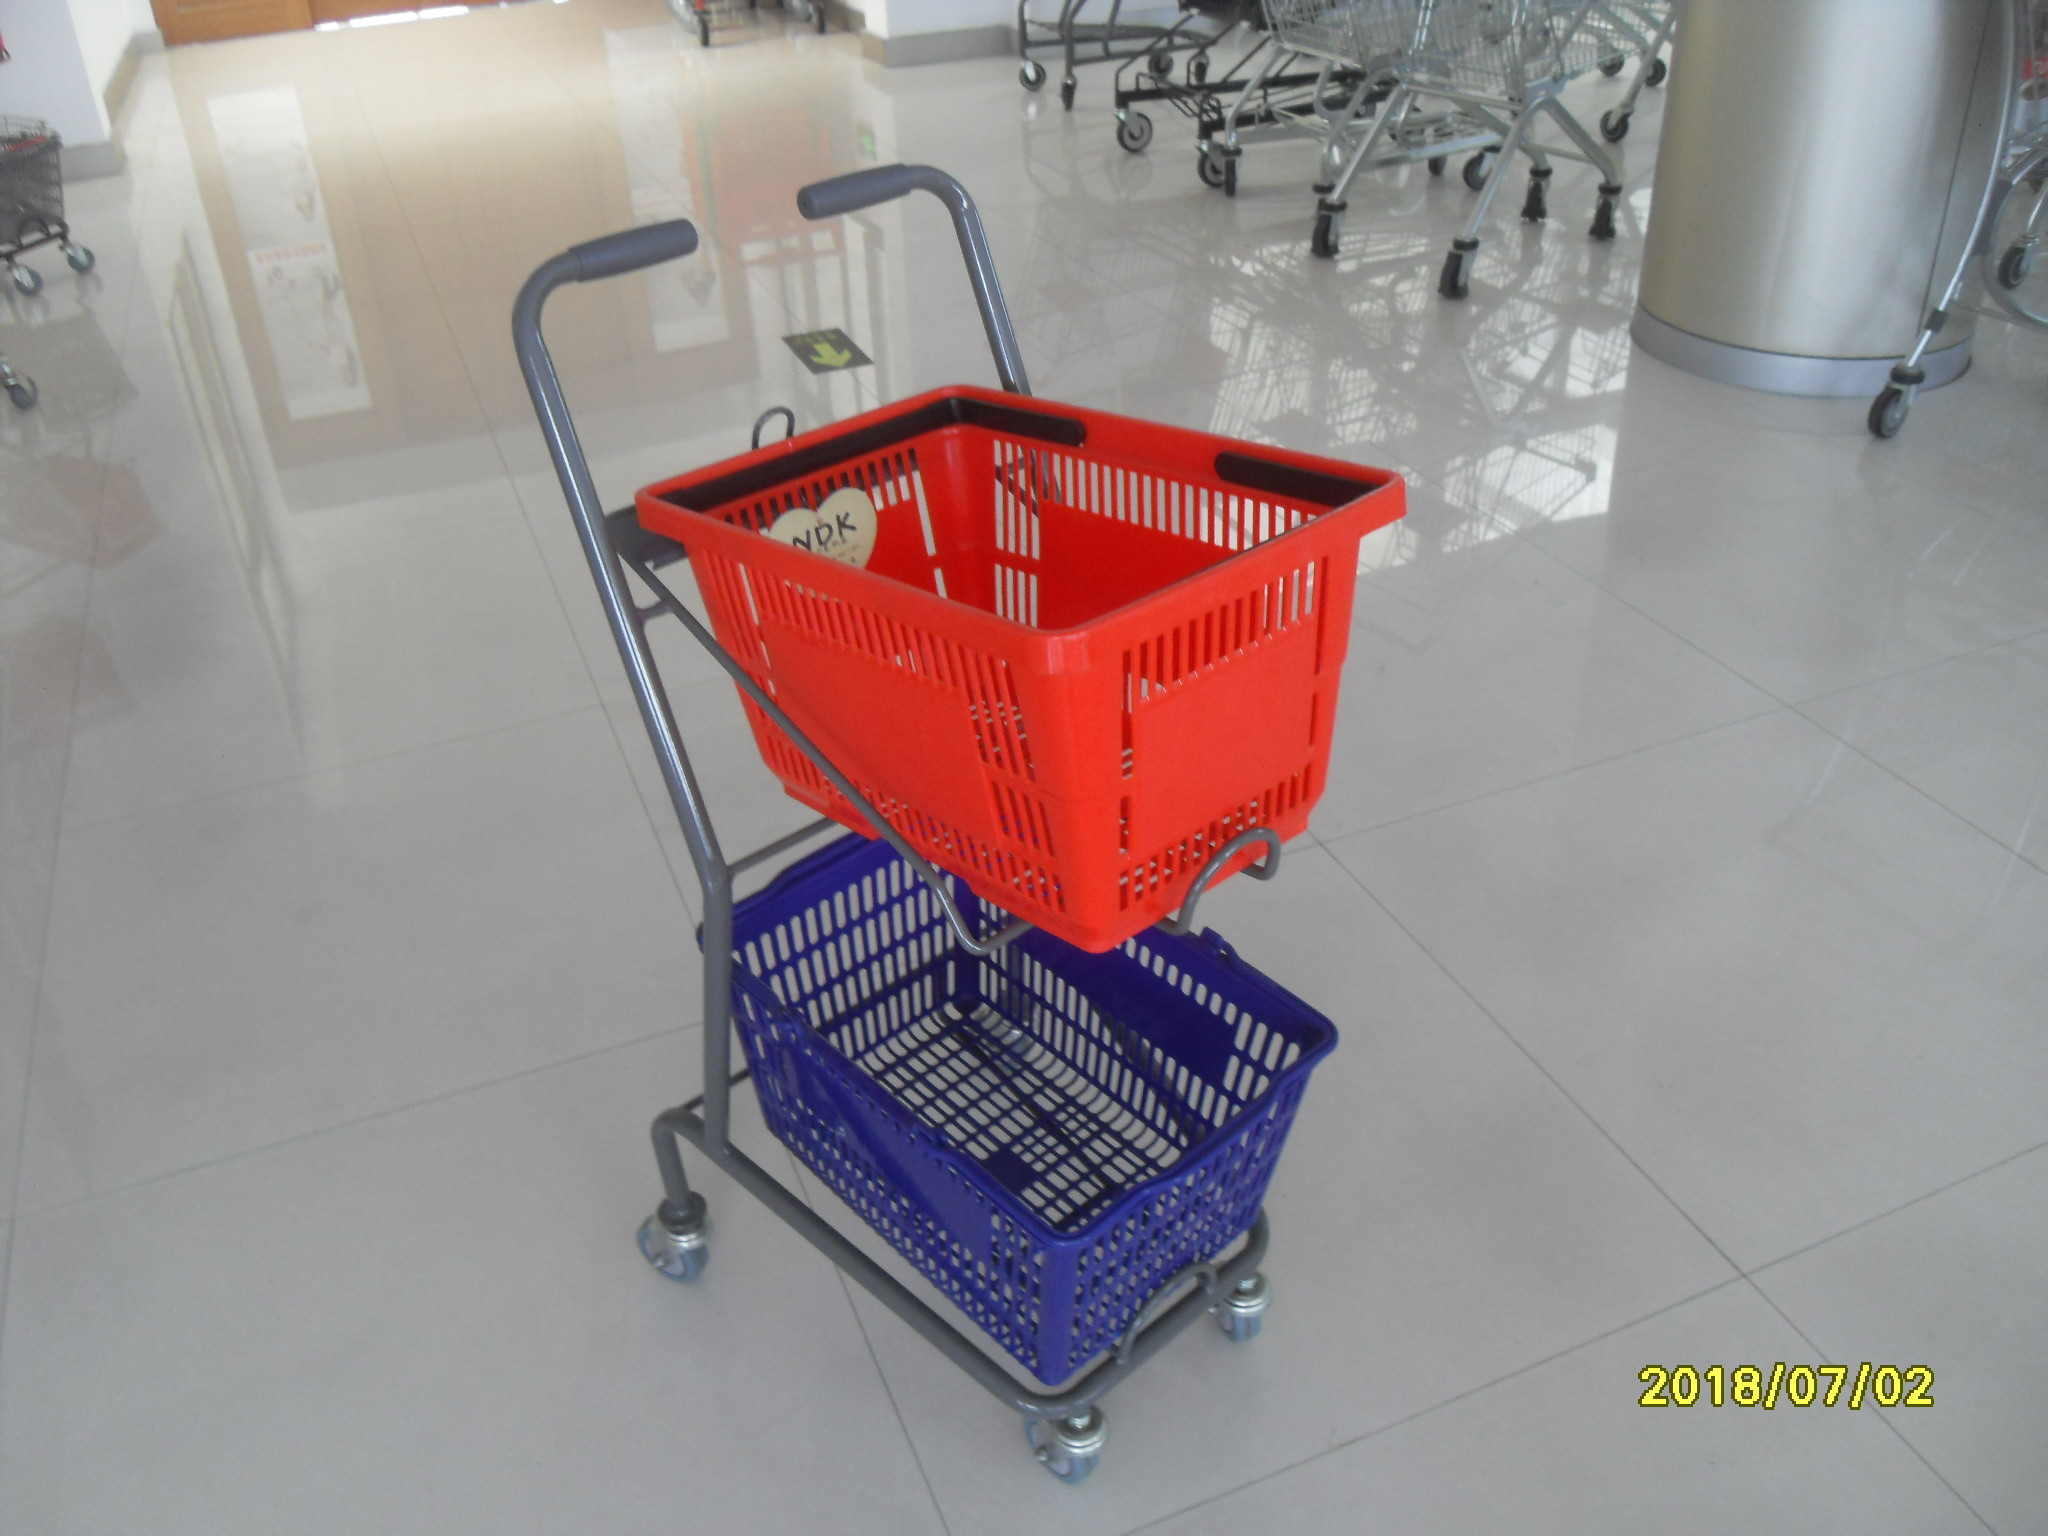 4 Swivel 3 Inch PVC Casters Supermarket Shopping Trolley Used In Small Shop